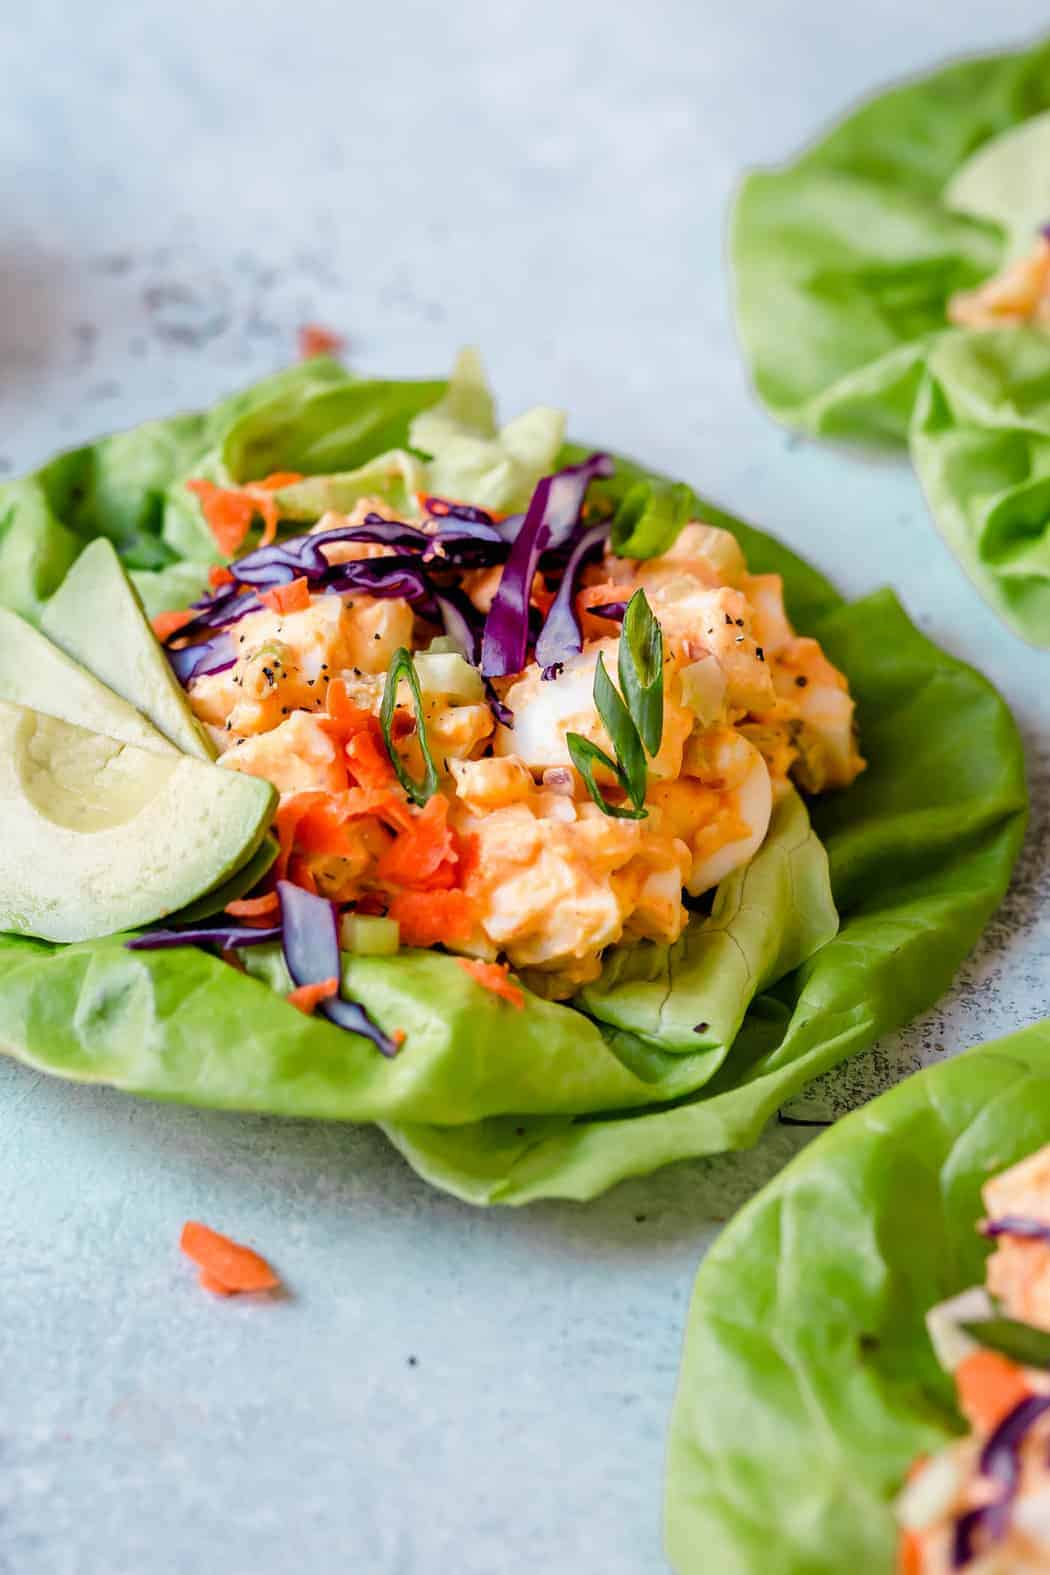 Photo of Buffalo Ranch Egg Salad in a butter lettuce leaf with avocado slice and topped with shredded red cabbage, shredded carrots and green onion slices.